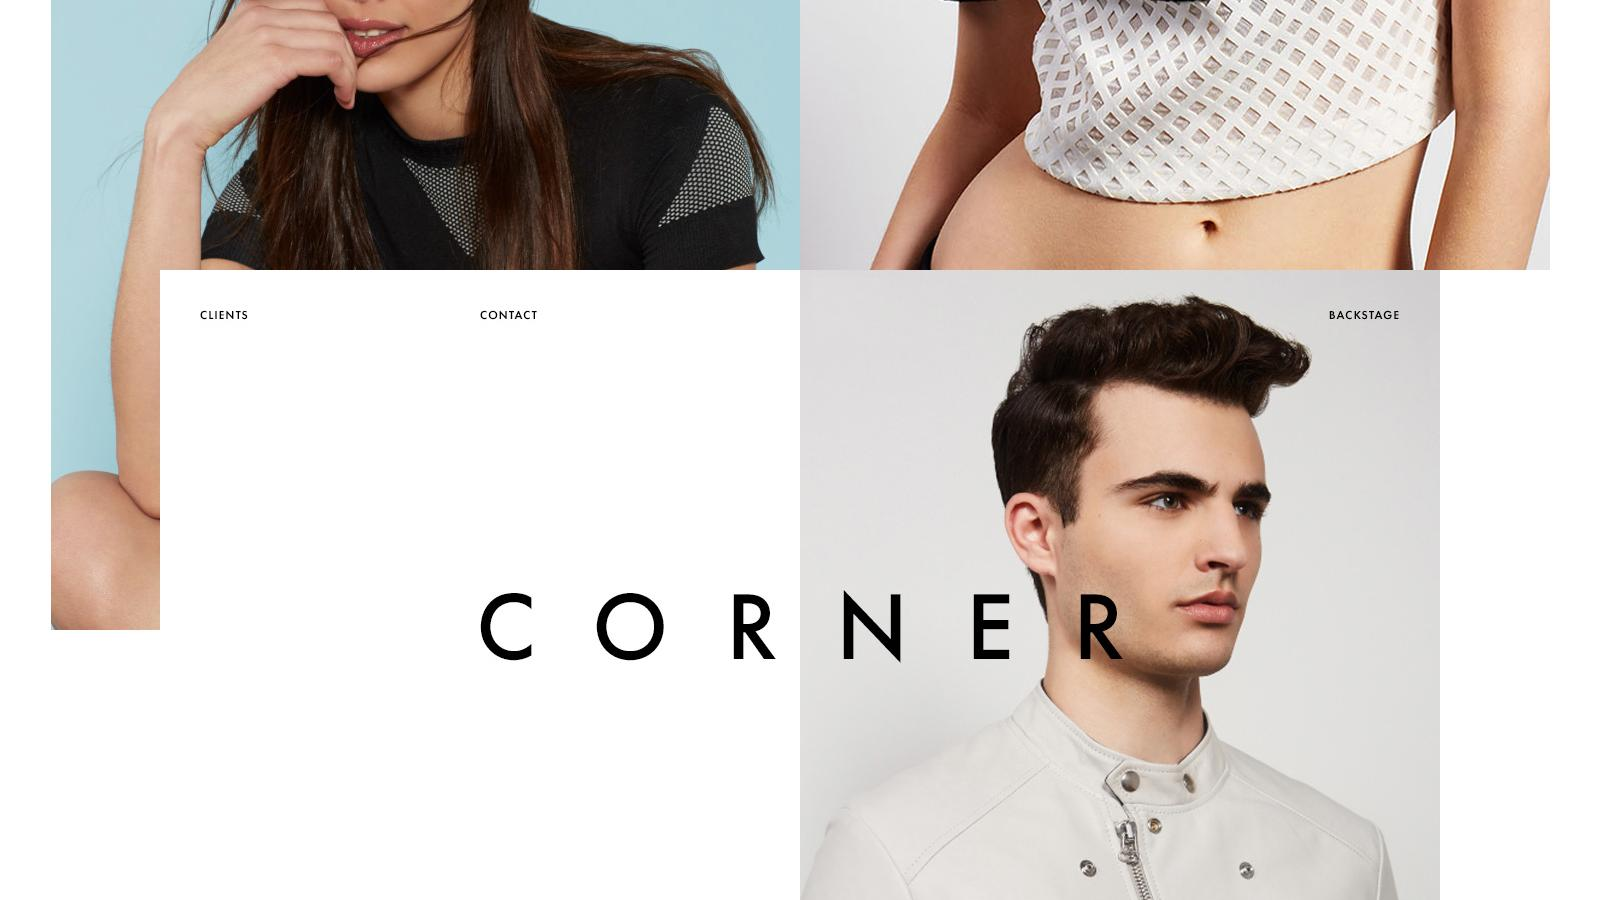 Minimalist Web Design for Corner Photo Studio